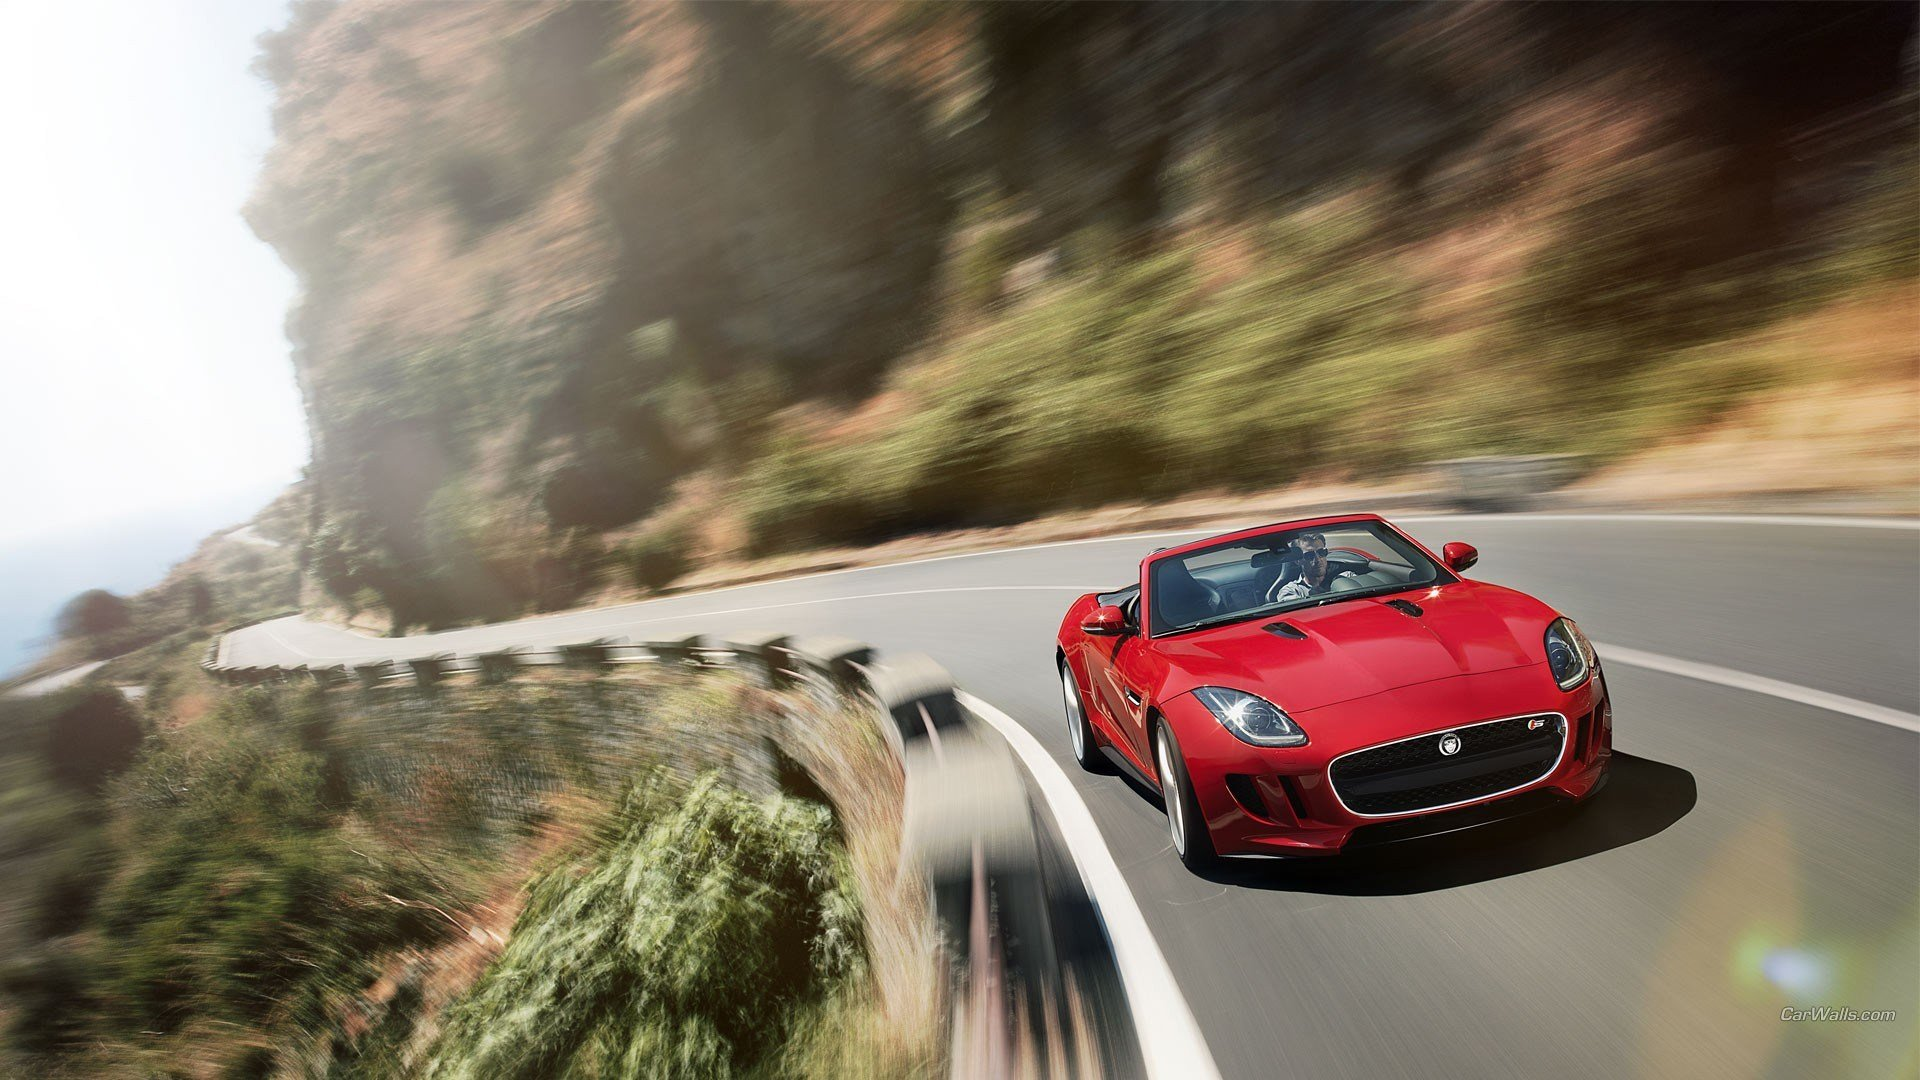 New Jaguar F Type Car Red Cars Motion Blur Wallpapers Hd On This Month